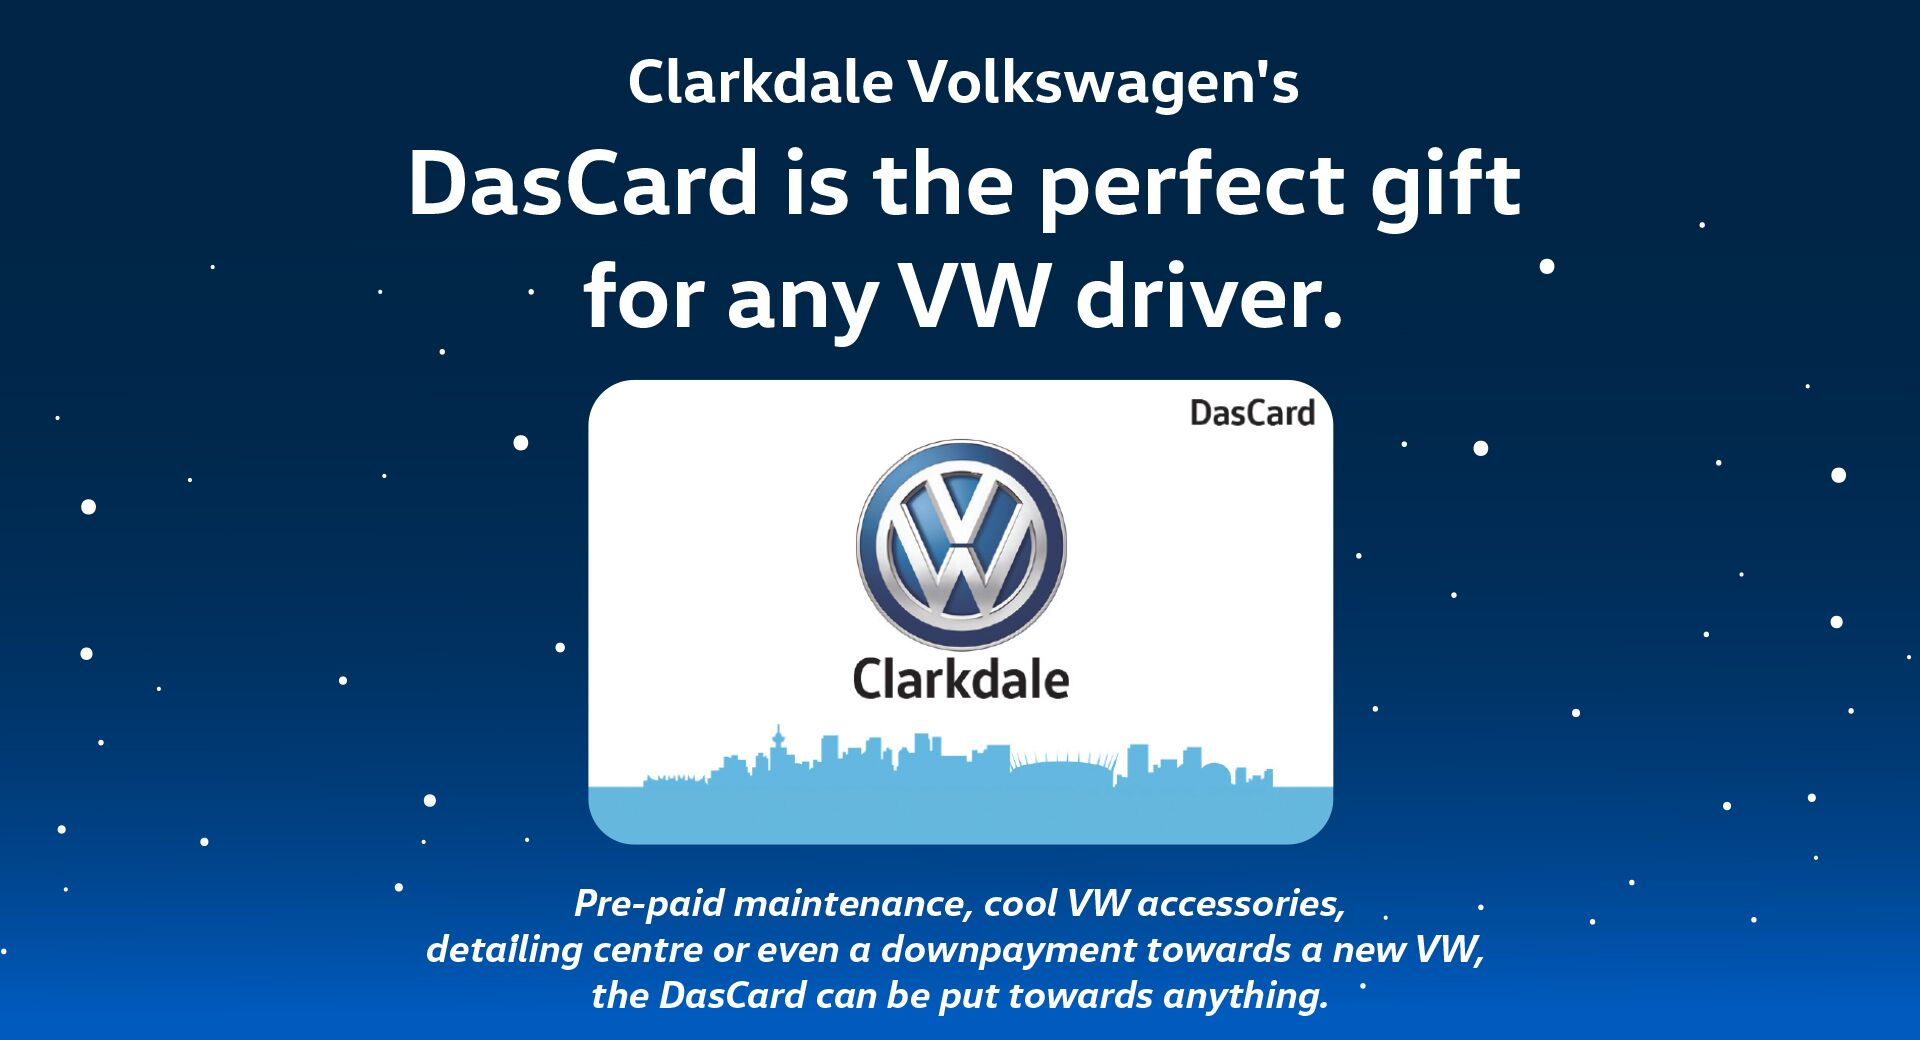 DasCard Holiday Gift For VW Lover